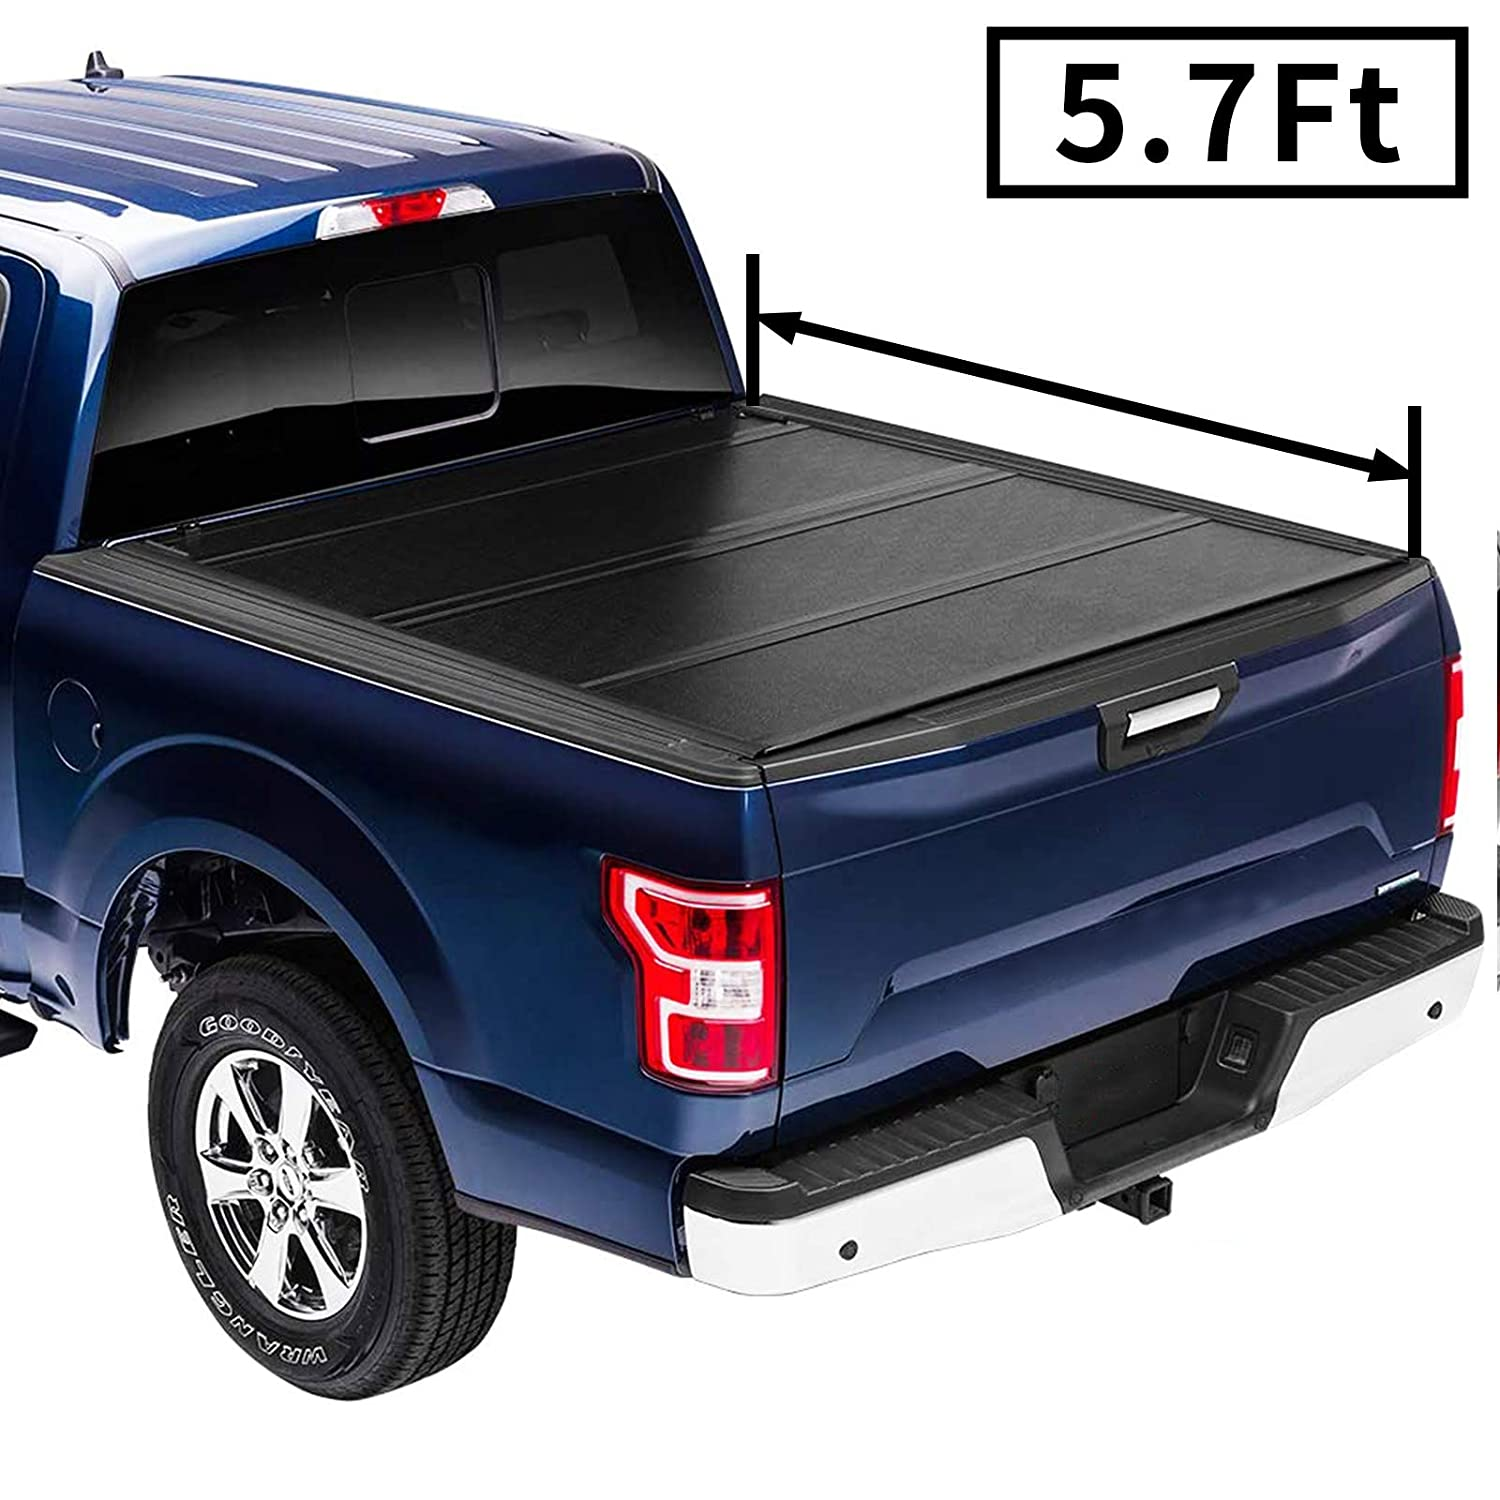 Flip Hard Folding Truck Houston Mall Bed Tonneau Cover DodgeRam 2019+ Fits Animer and price revision 5'